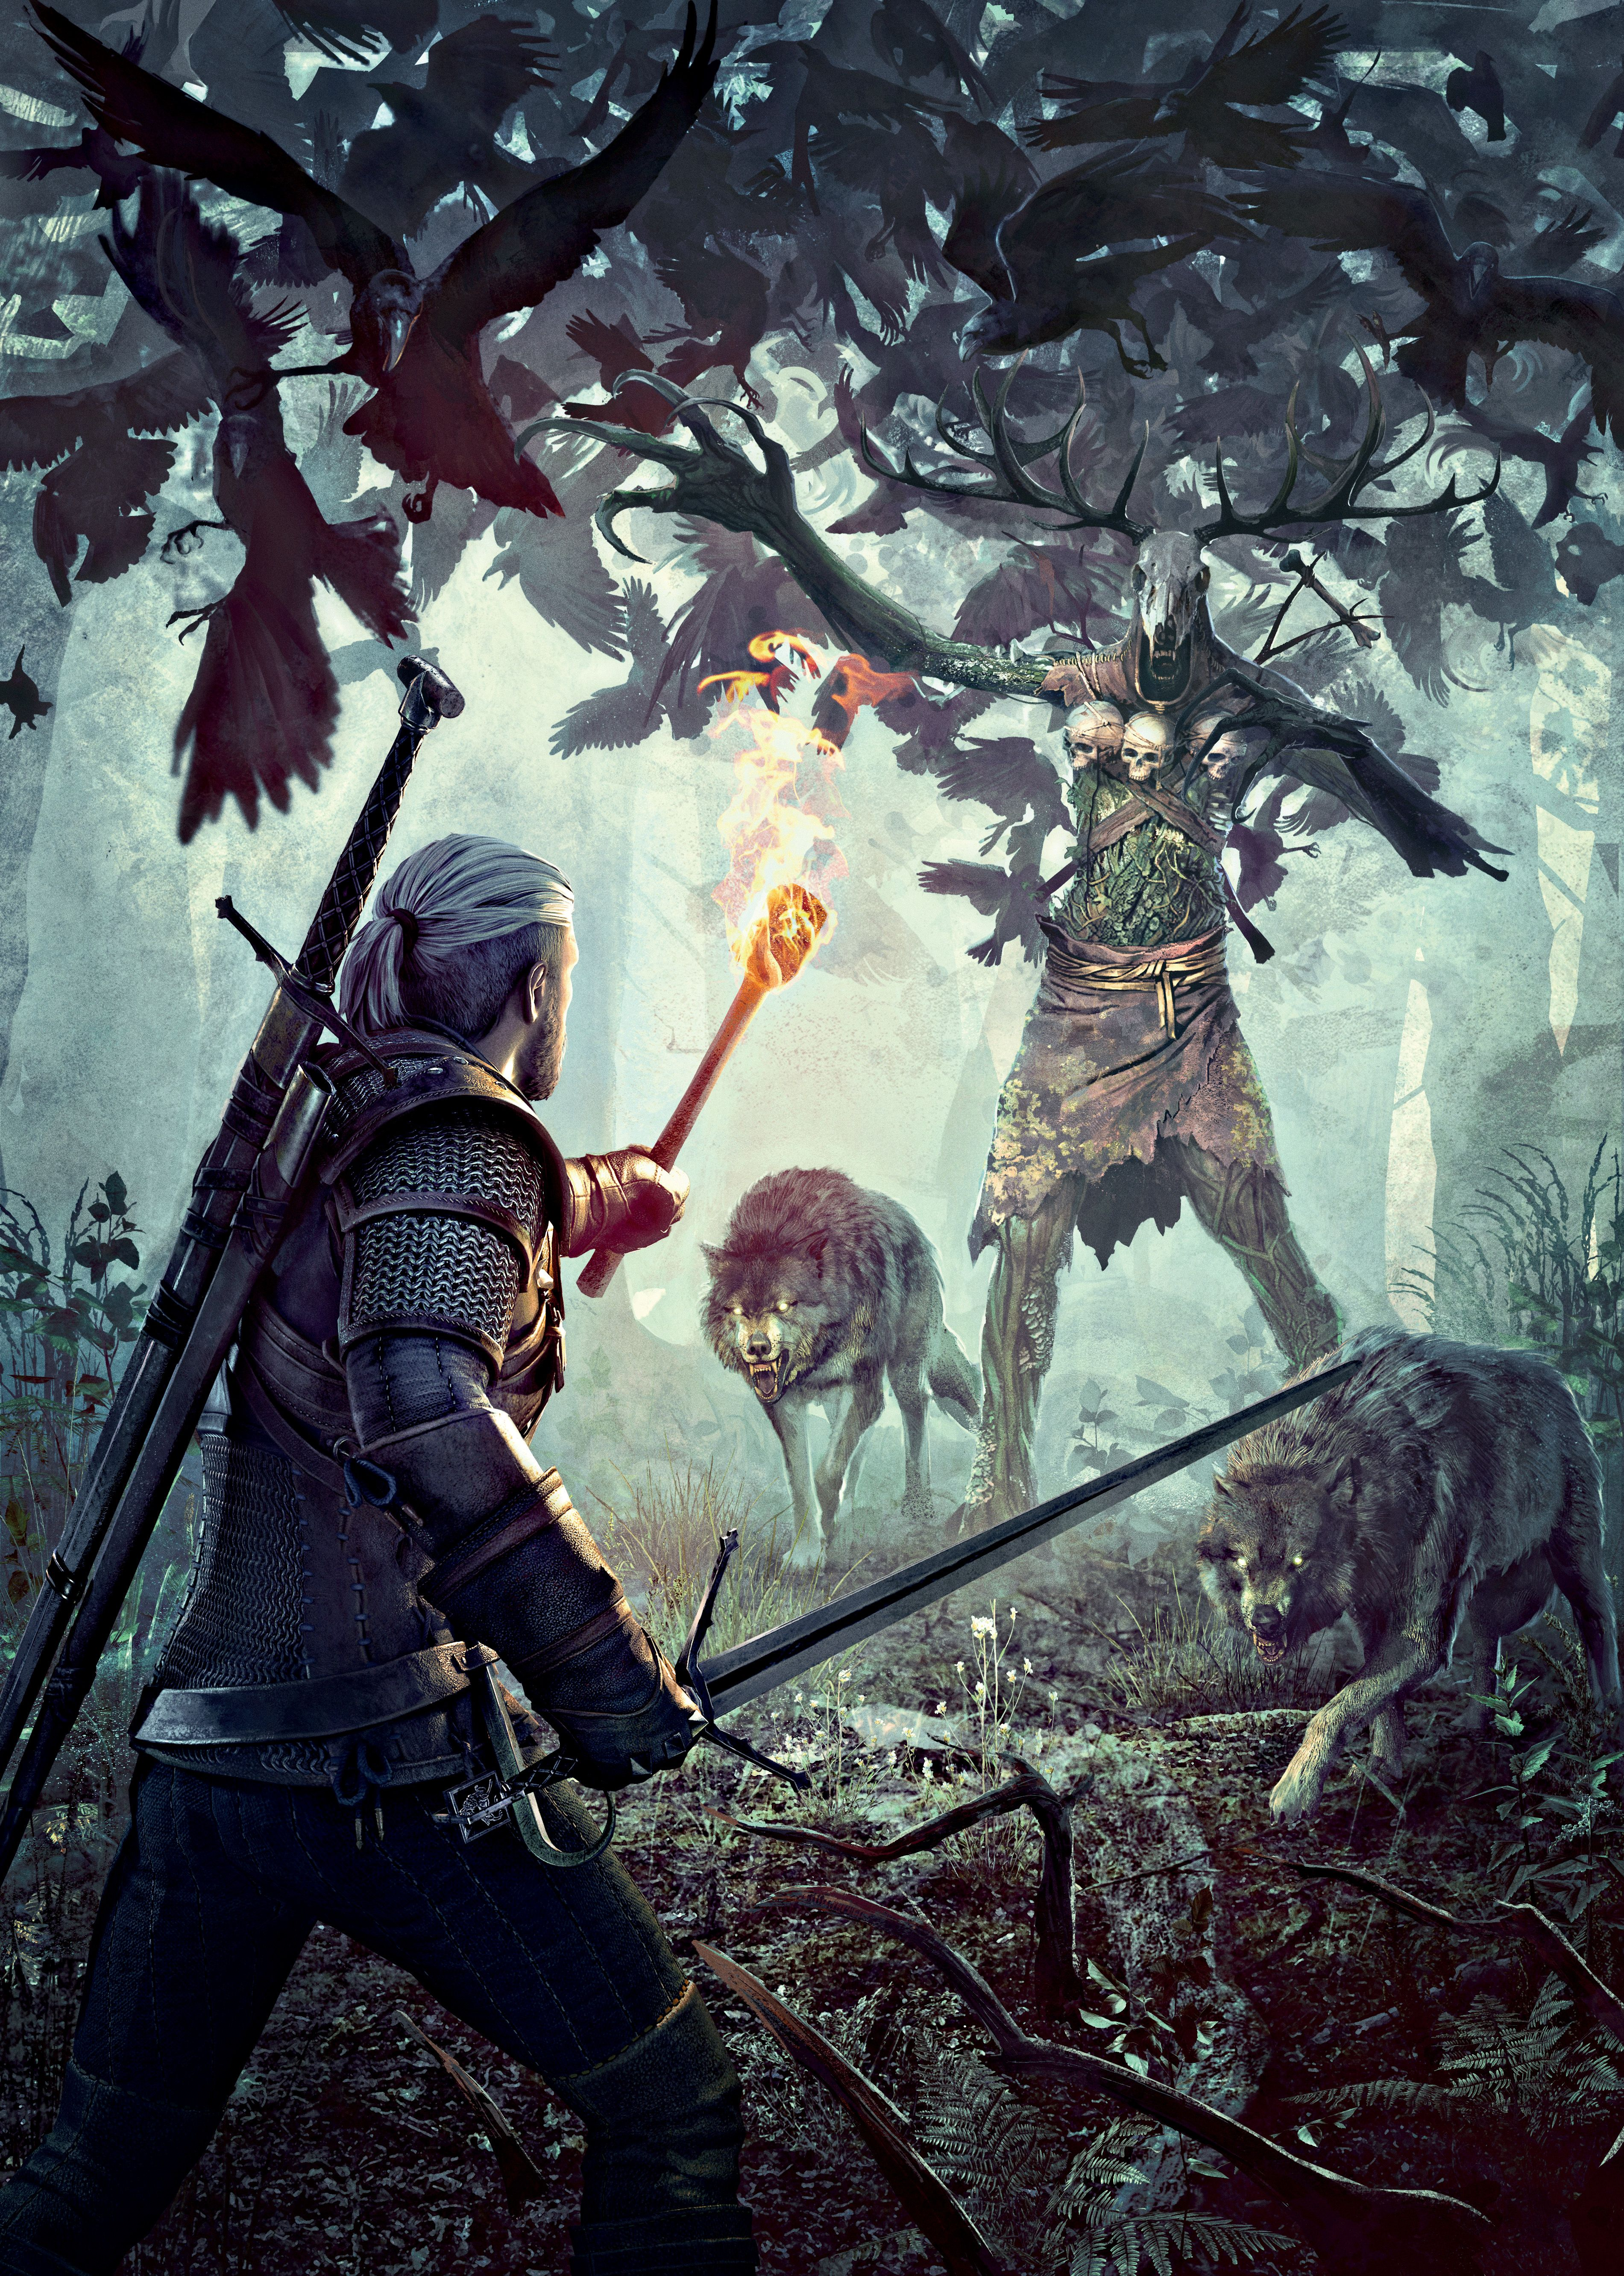 The Witcher 3 Wild Hunt Leshen Cover2 By Scratcherpen Deviantart Com On Deviantart The Witcher Wild Hunt The Witcher Geralt The Witcher The witcher 3 wild hunt art